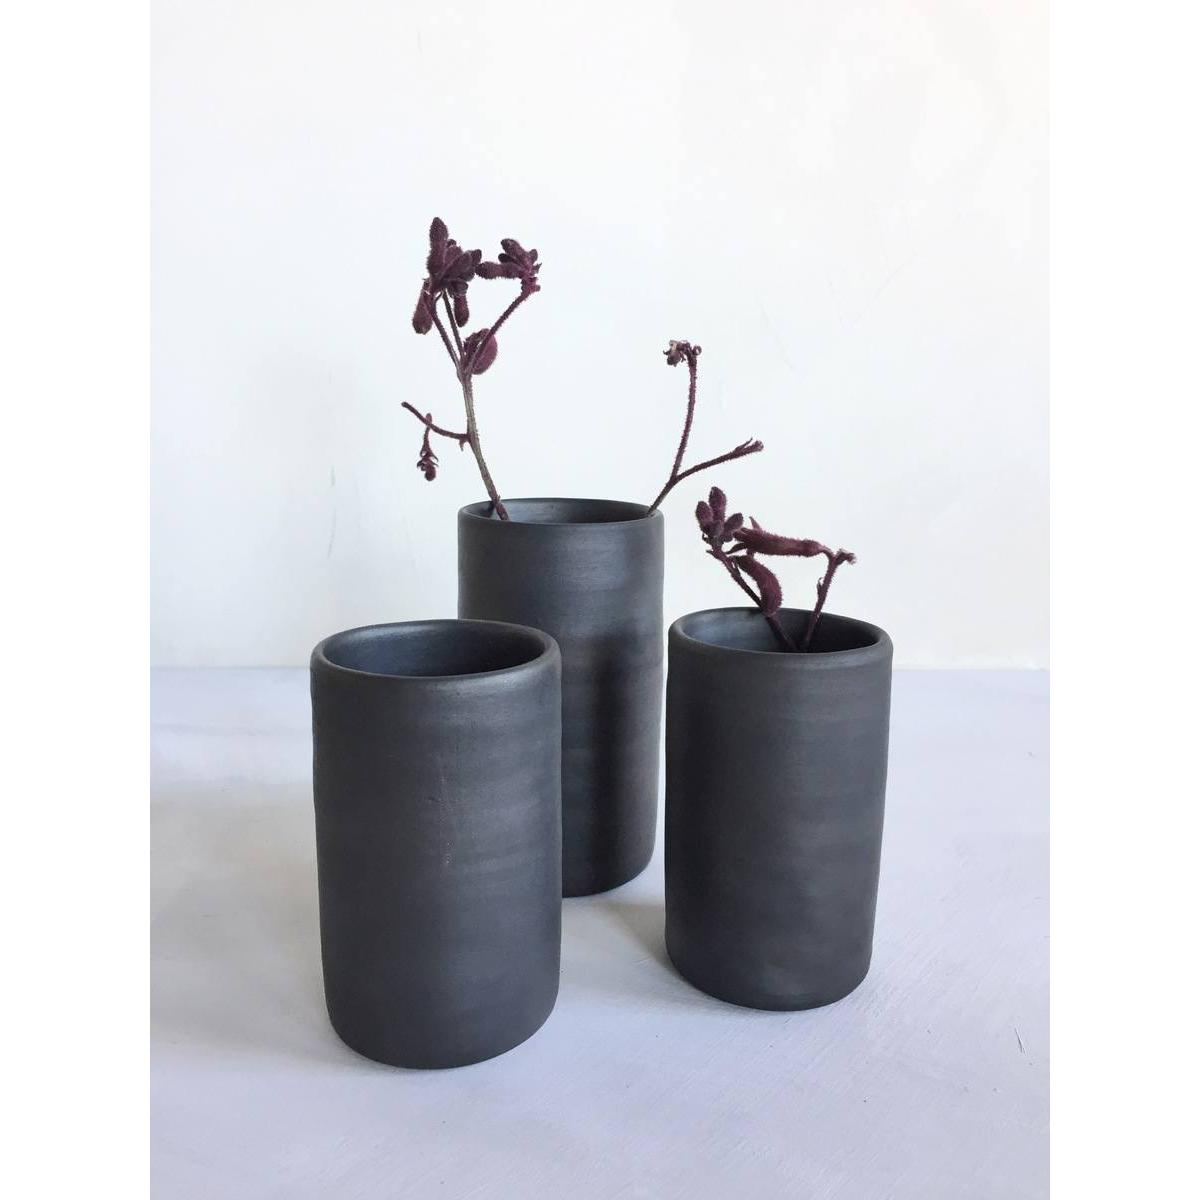 Reduced, black ceramic vases